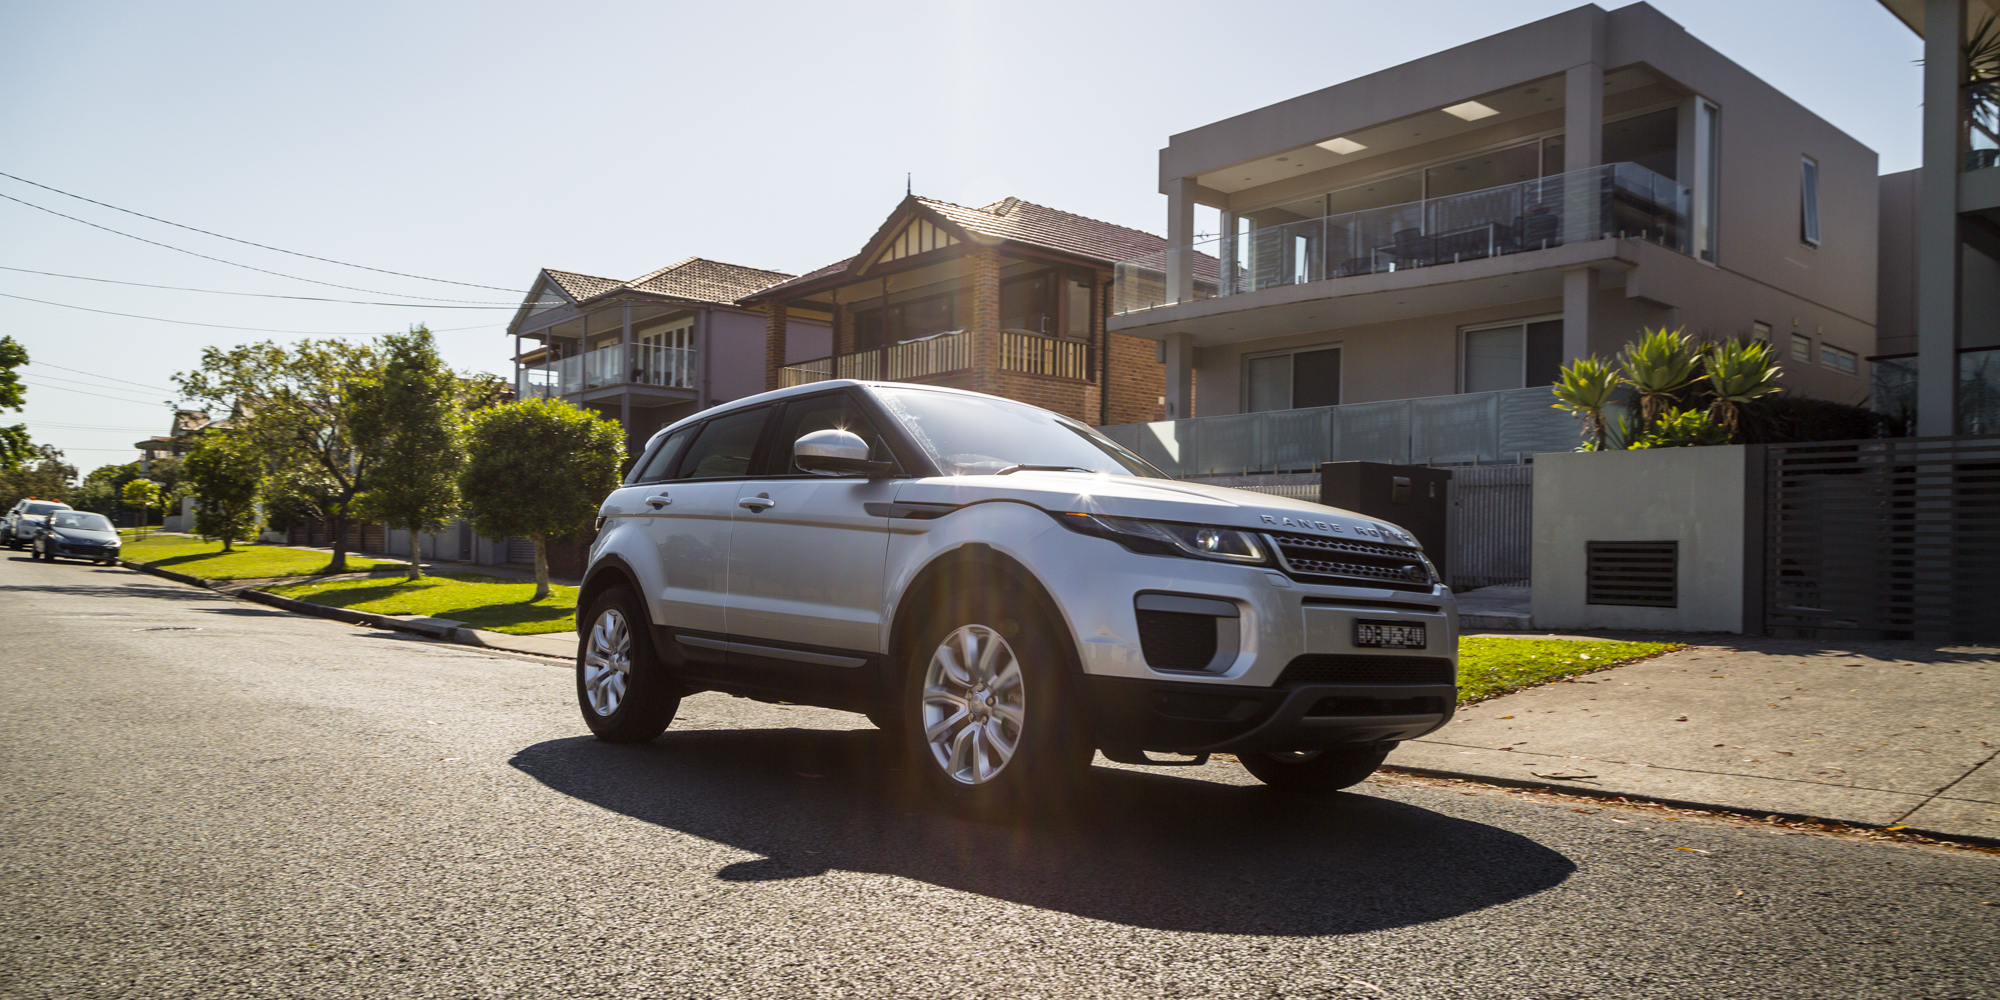 Model 2016 Range Rover Evoque Review  CarAdvice